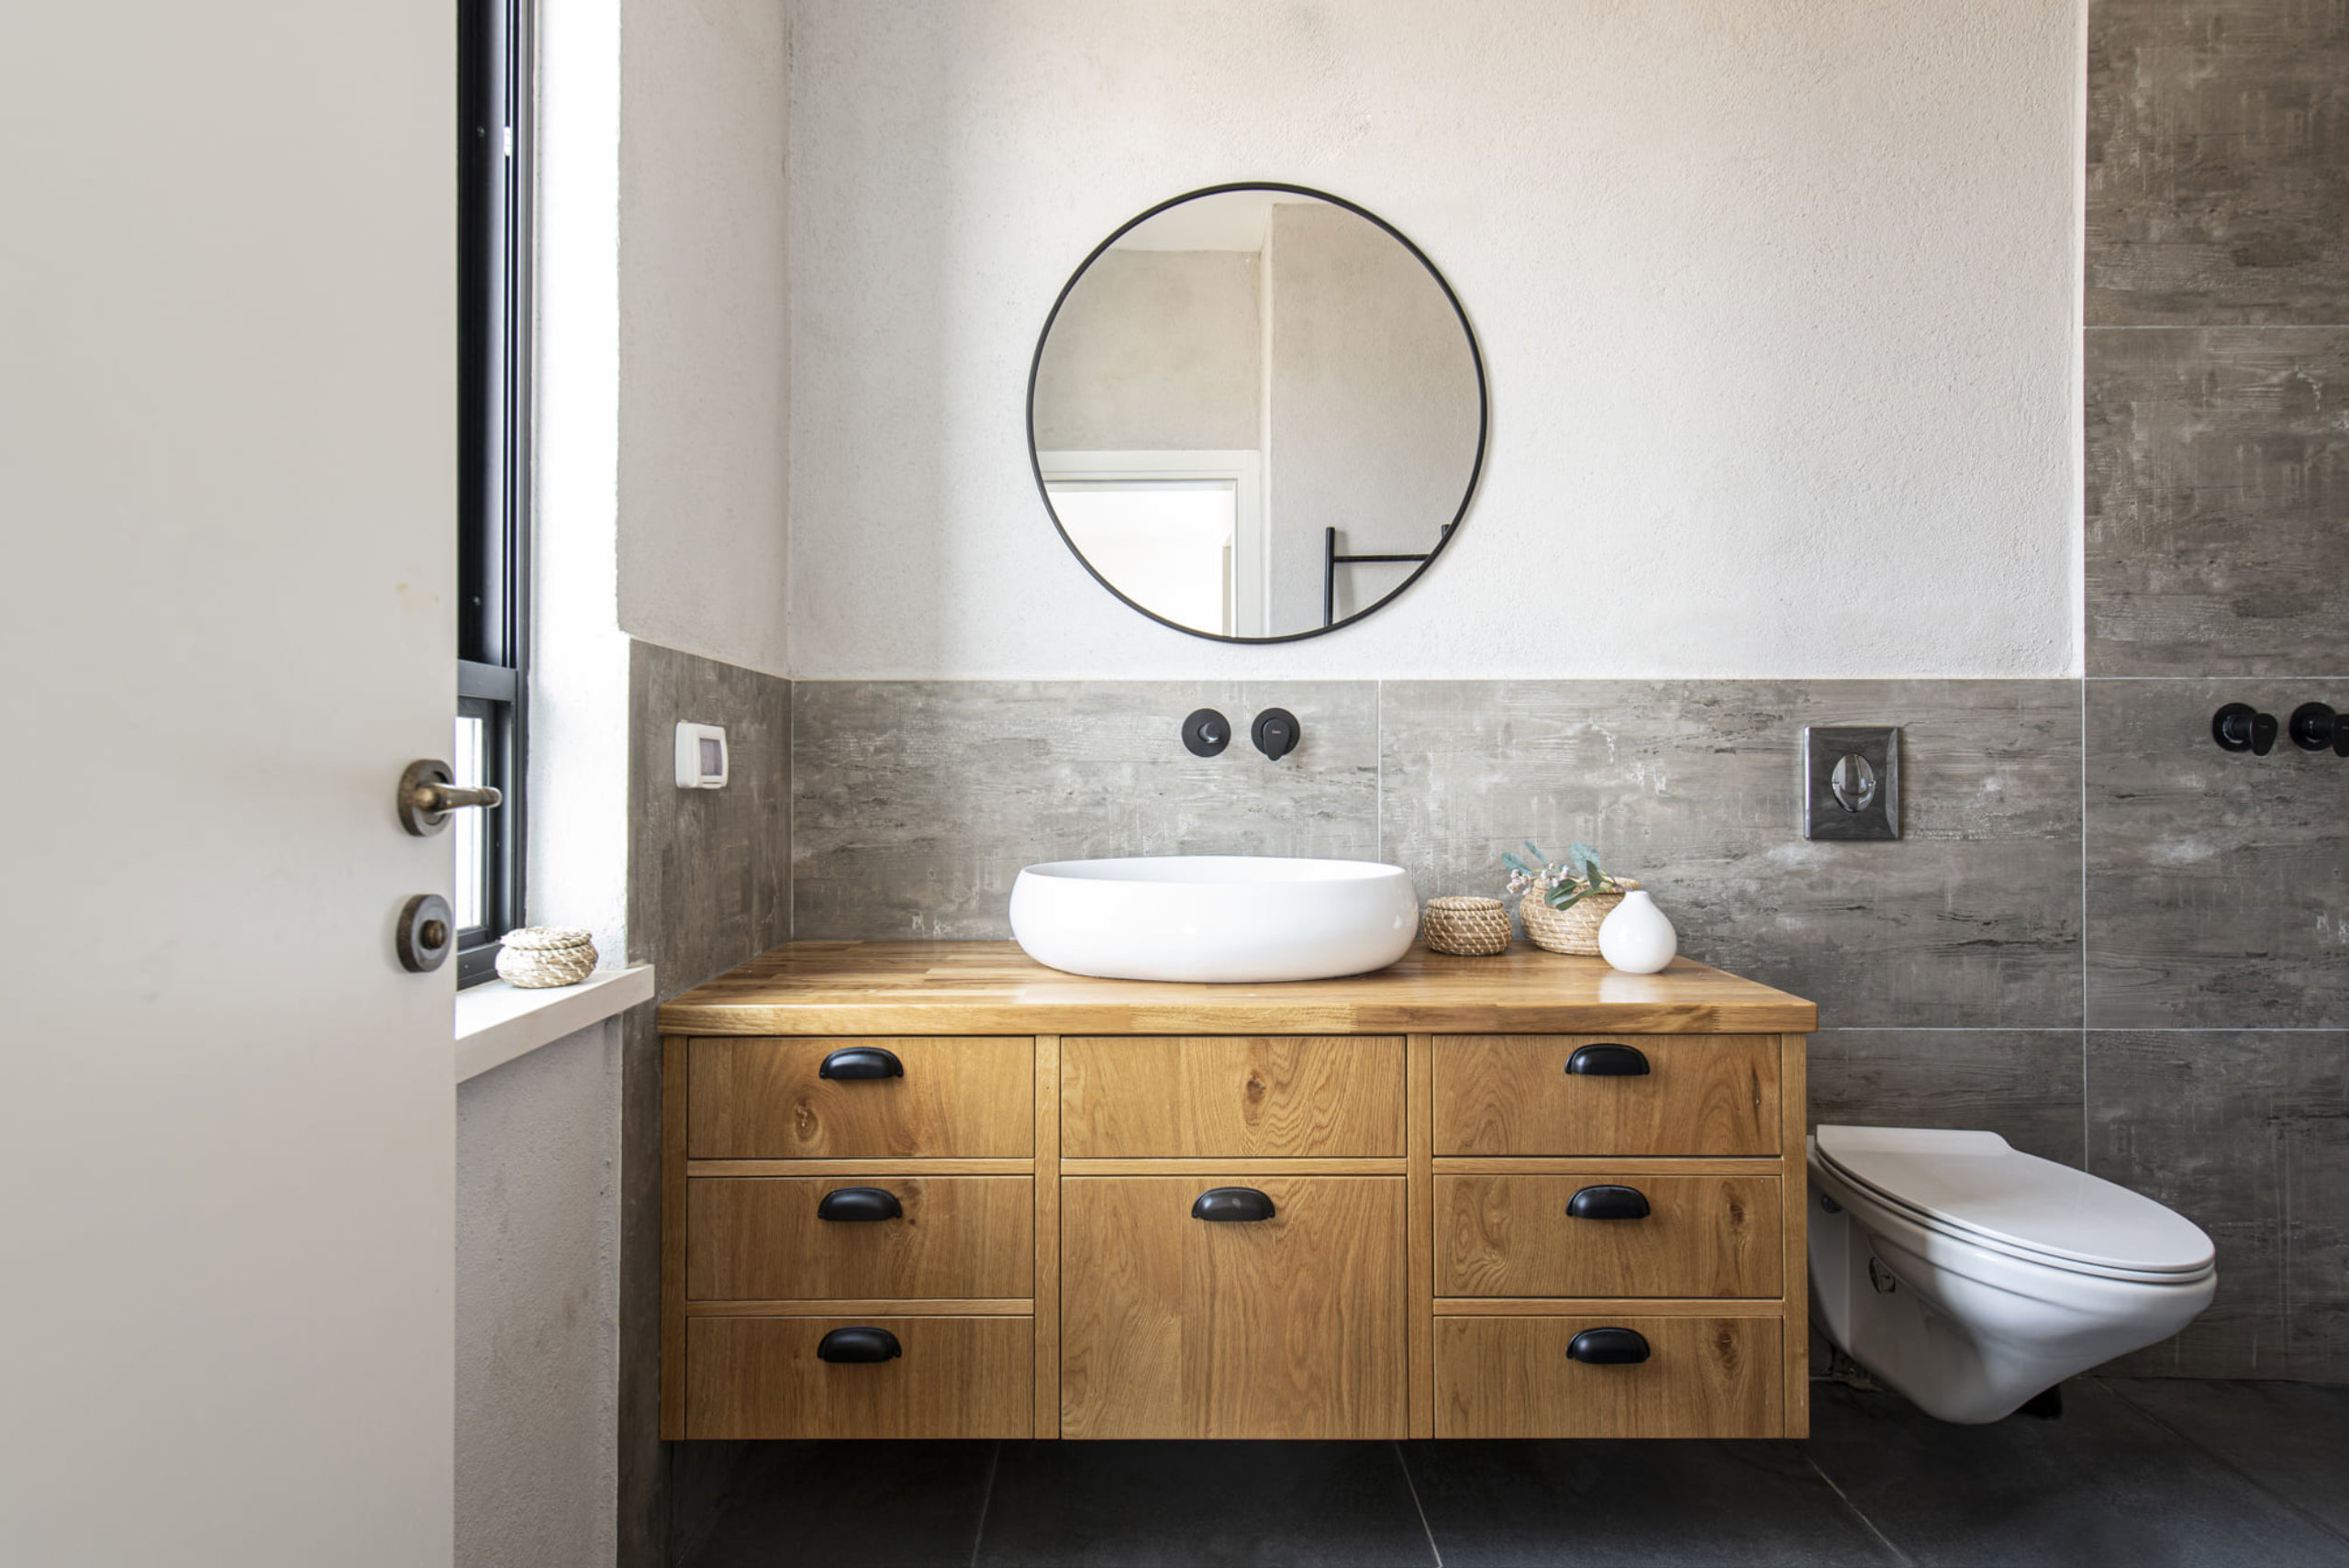 Chicago Logan Square Master Bathroom Renovation